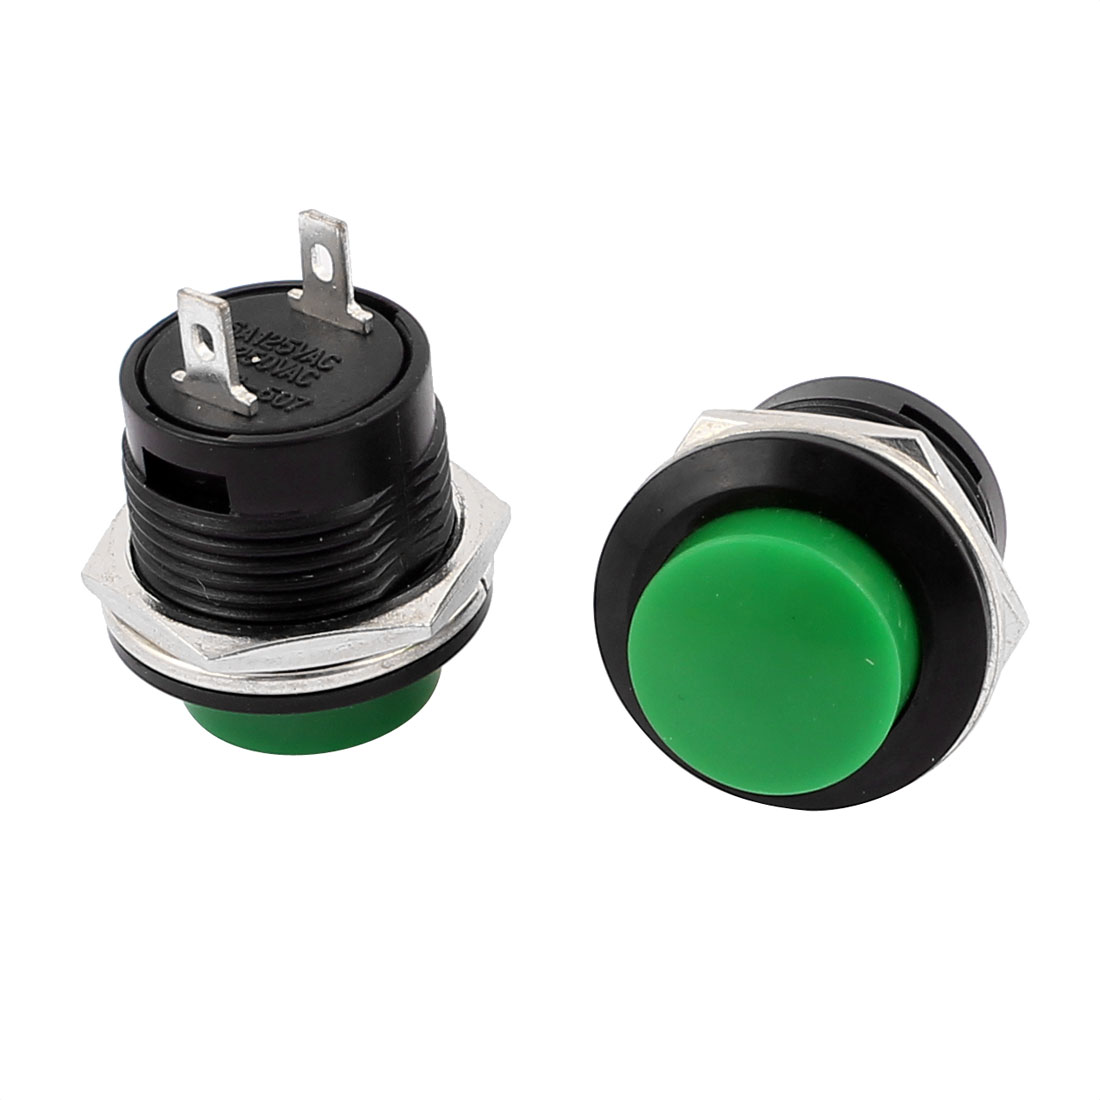 AC 250V 3A 125V 6A Green Round Cap Momentary Push Button Switch with Lamp 2 Pcs